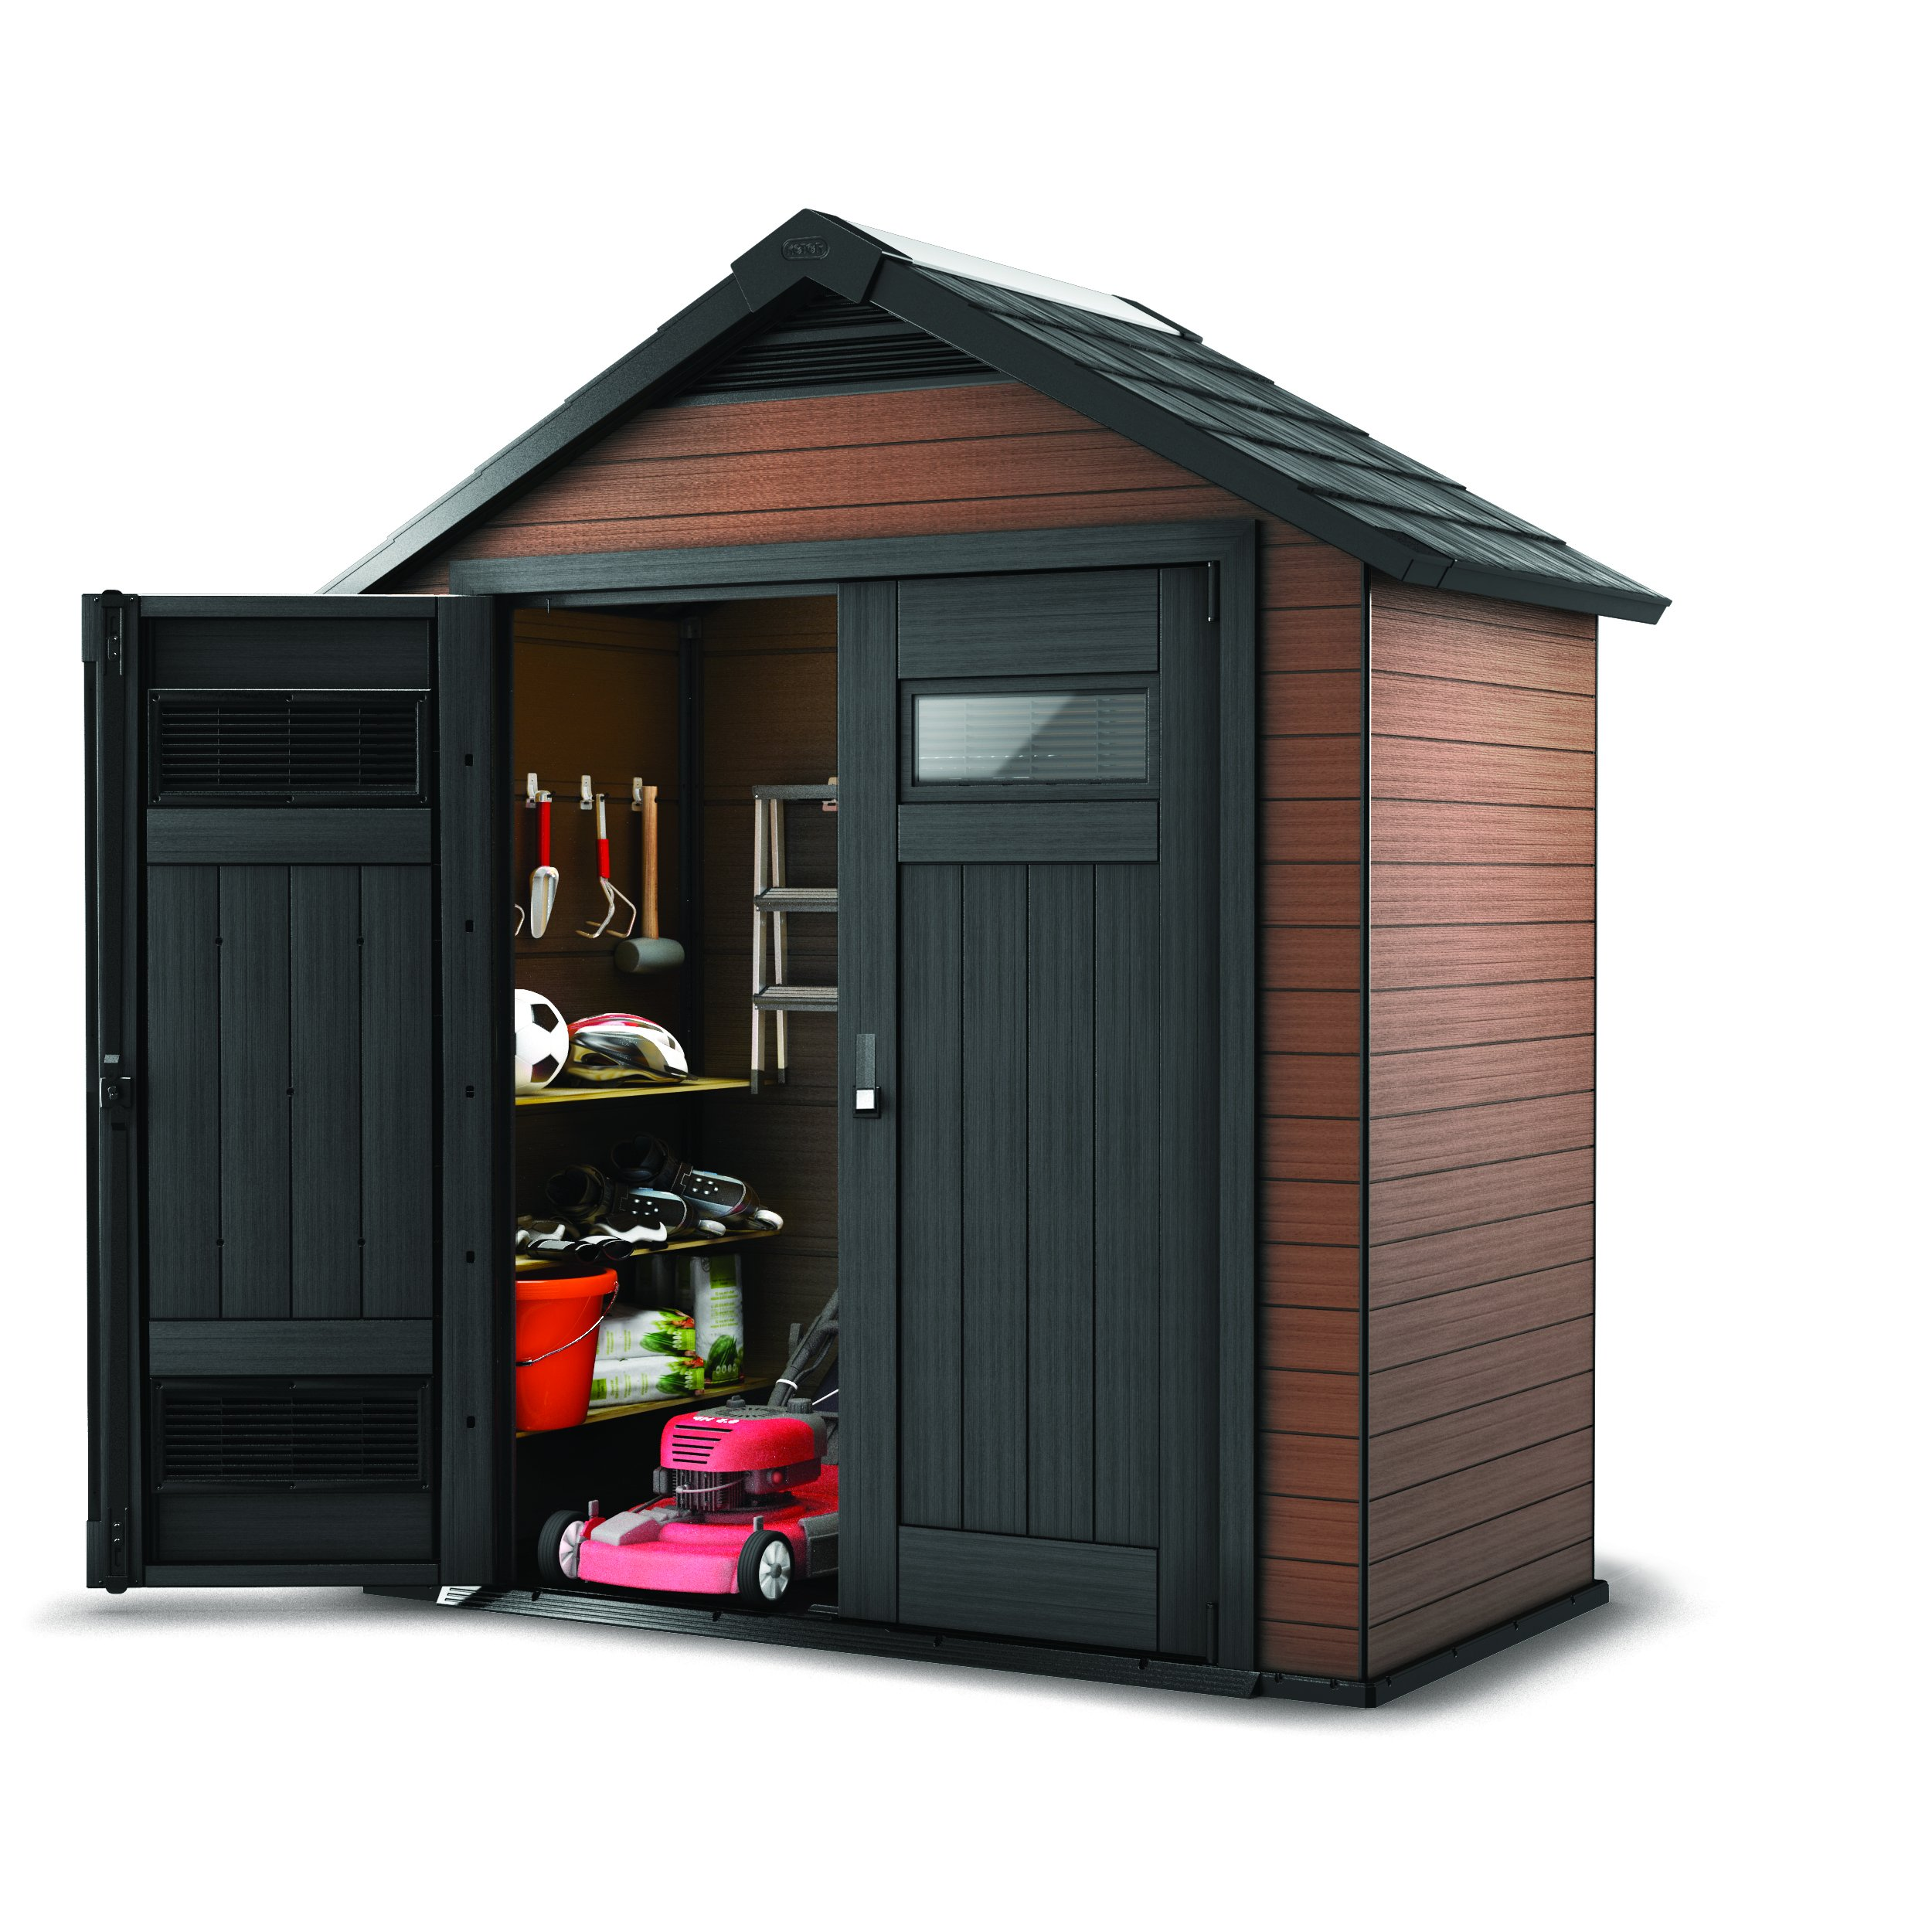 Keter Fusion Large 7.5 x 4 ft. Wood & Plastic Outdoor Yard Garden Composite Storage Shed